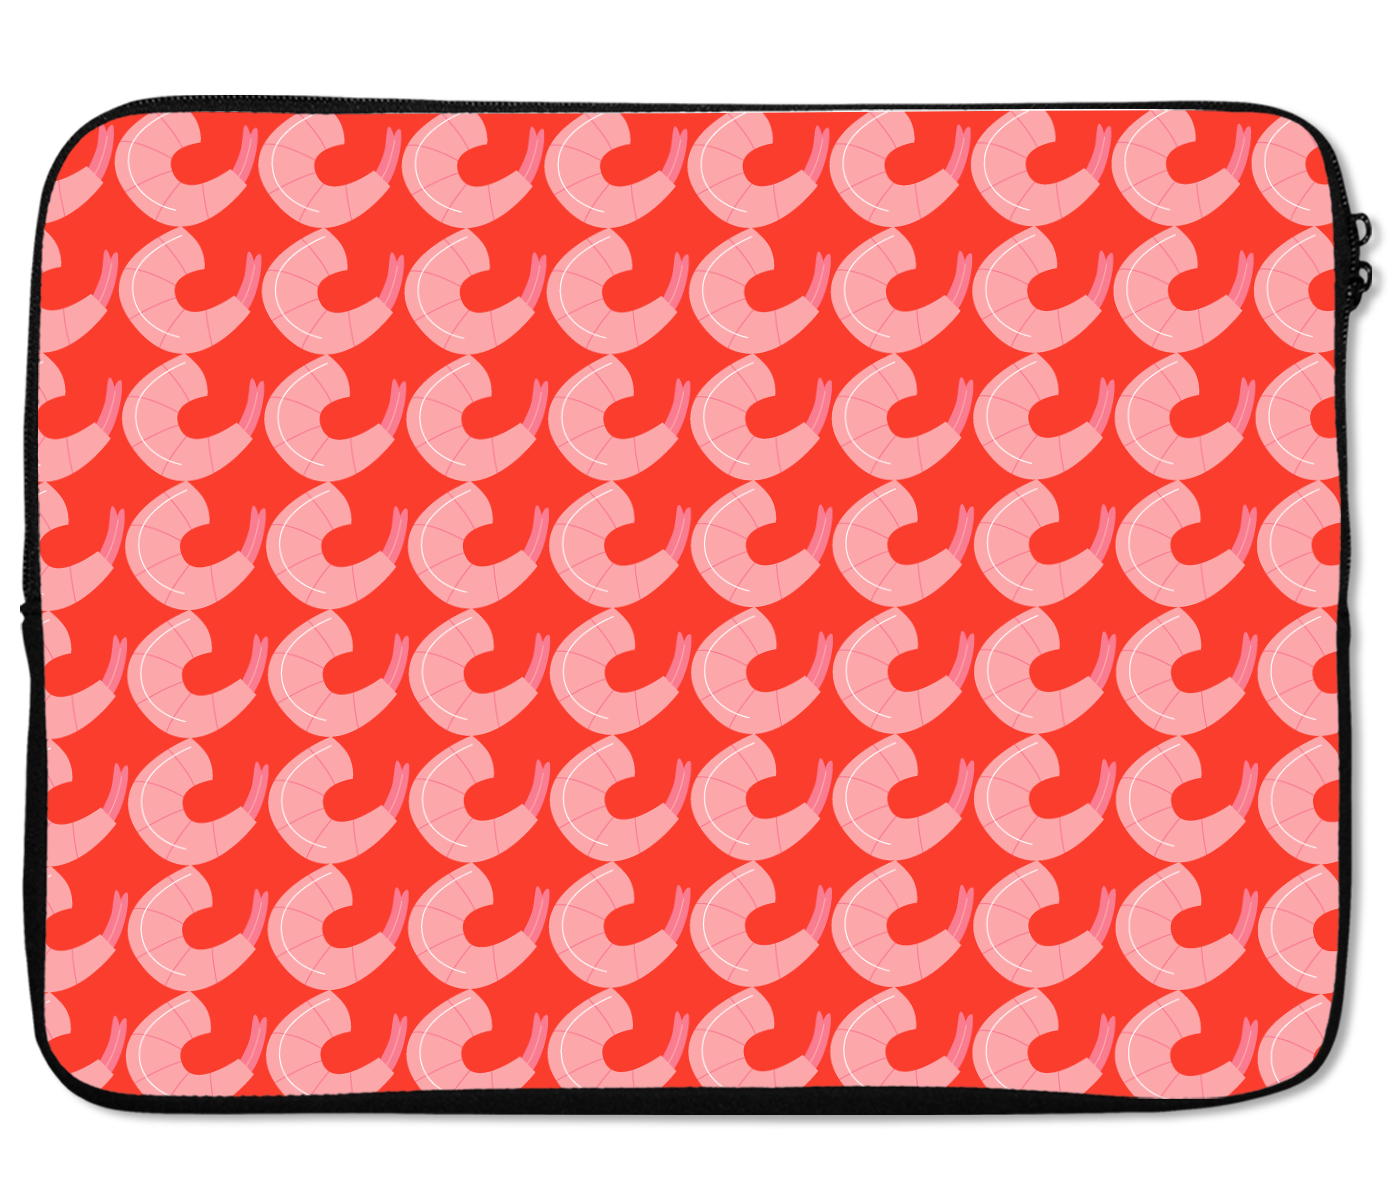 Laptops Tablet Sleeves Shrimp Pattern Premium Quality Neoprene Laptop Protection